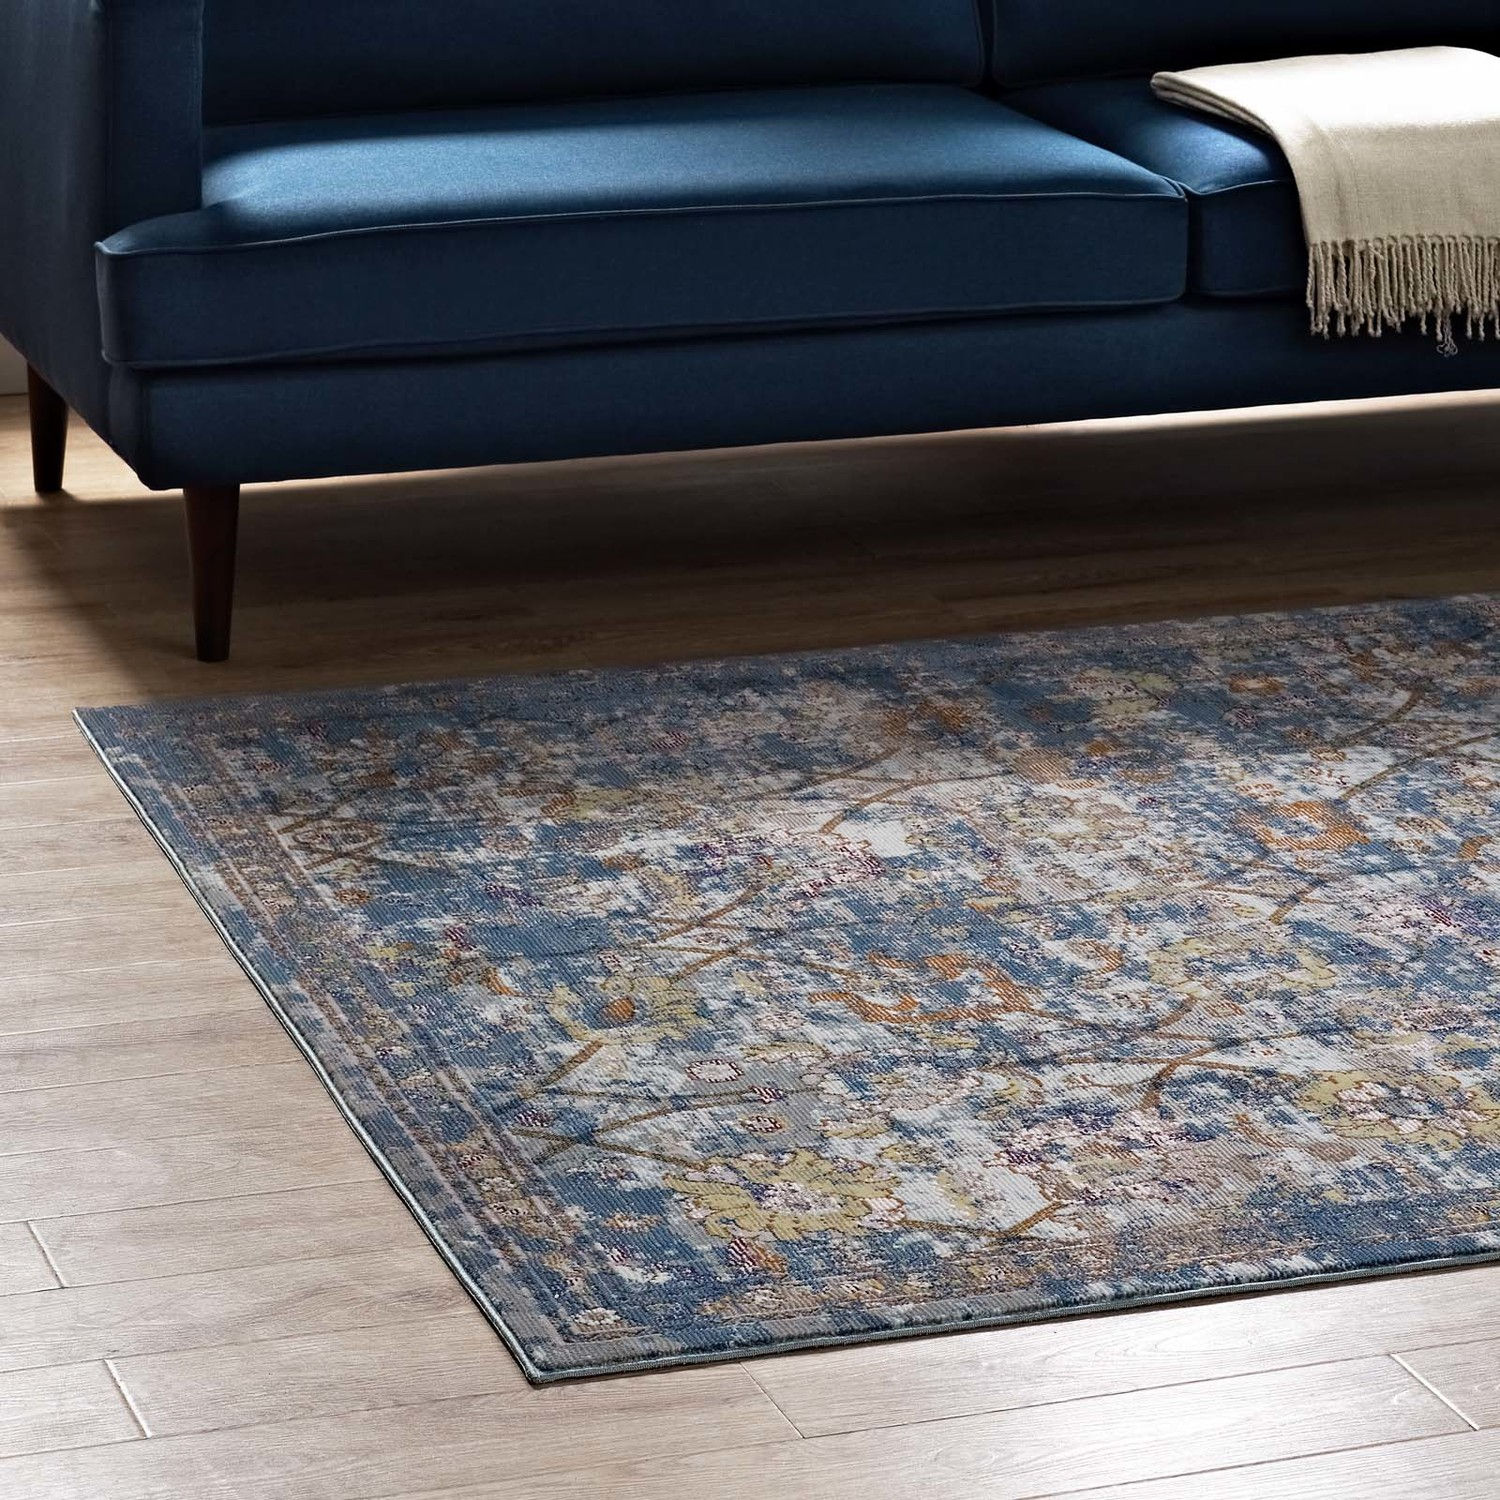 Picture of: Minu Blue Gray Yellow Orange 8×10 Area Rug R 1091c 810 Modway Furniture Area Rugs Comfyco Furniture